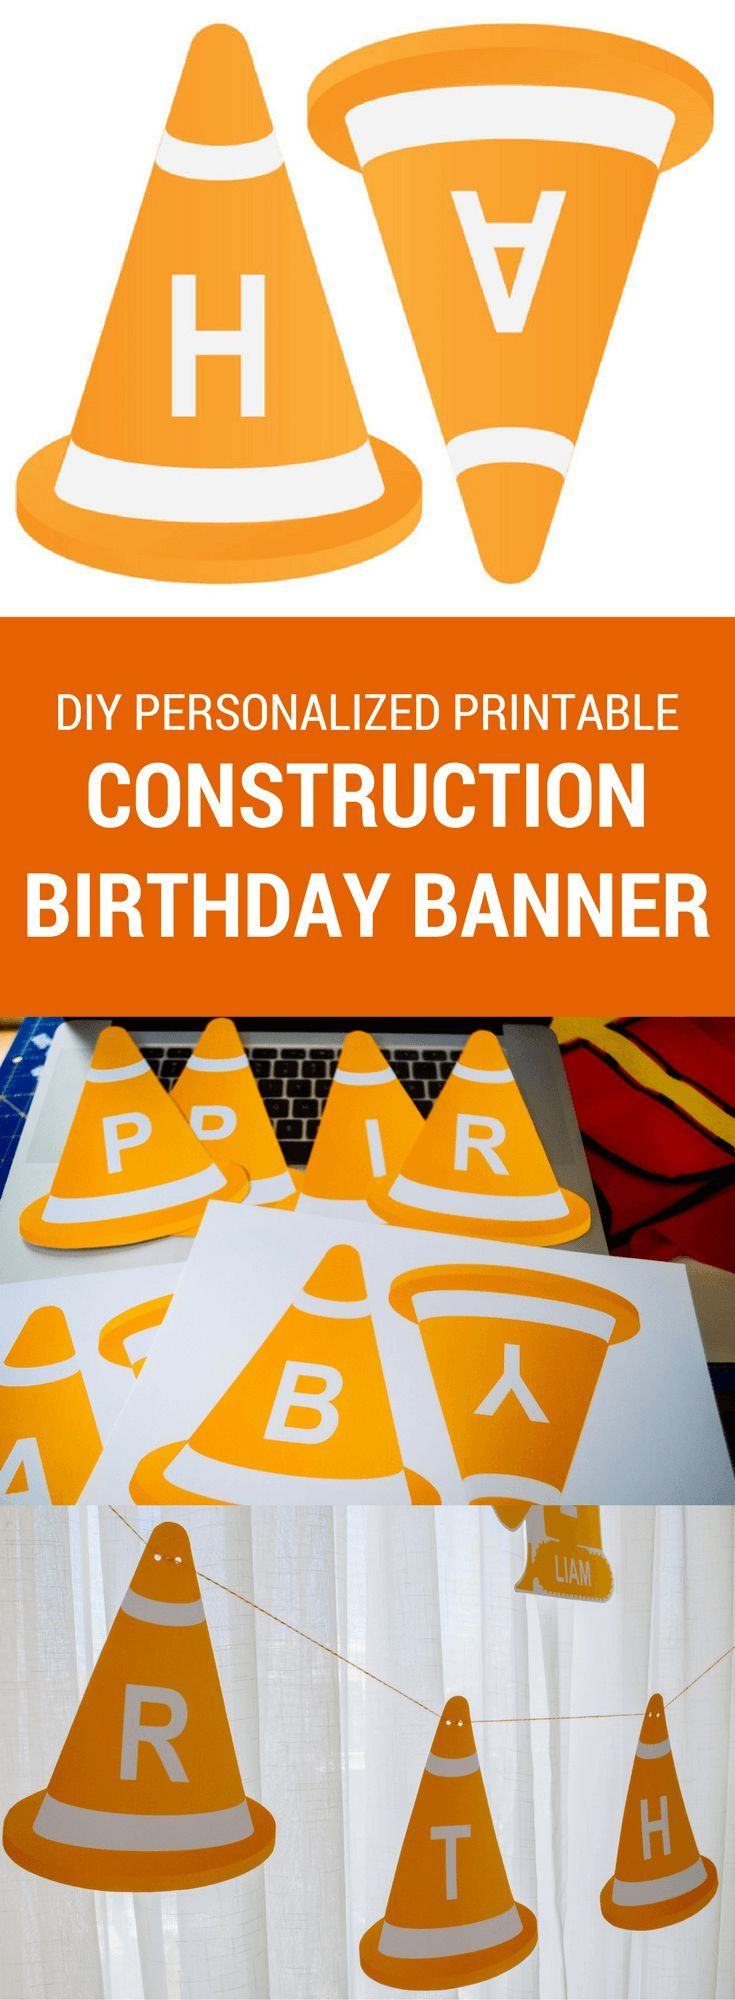 Modern construction printable birthday banner for a construction birthday party